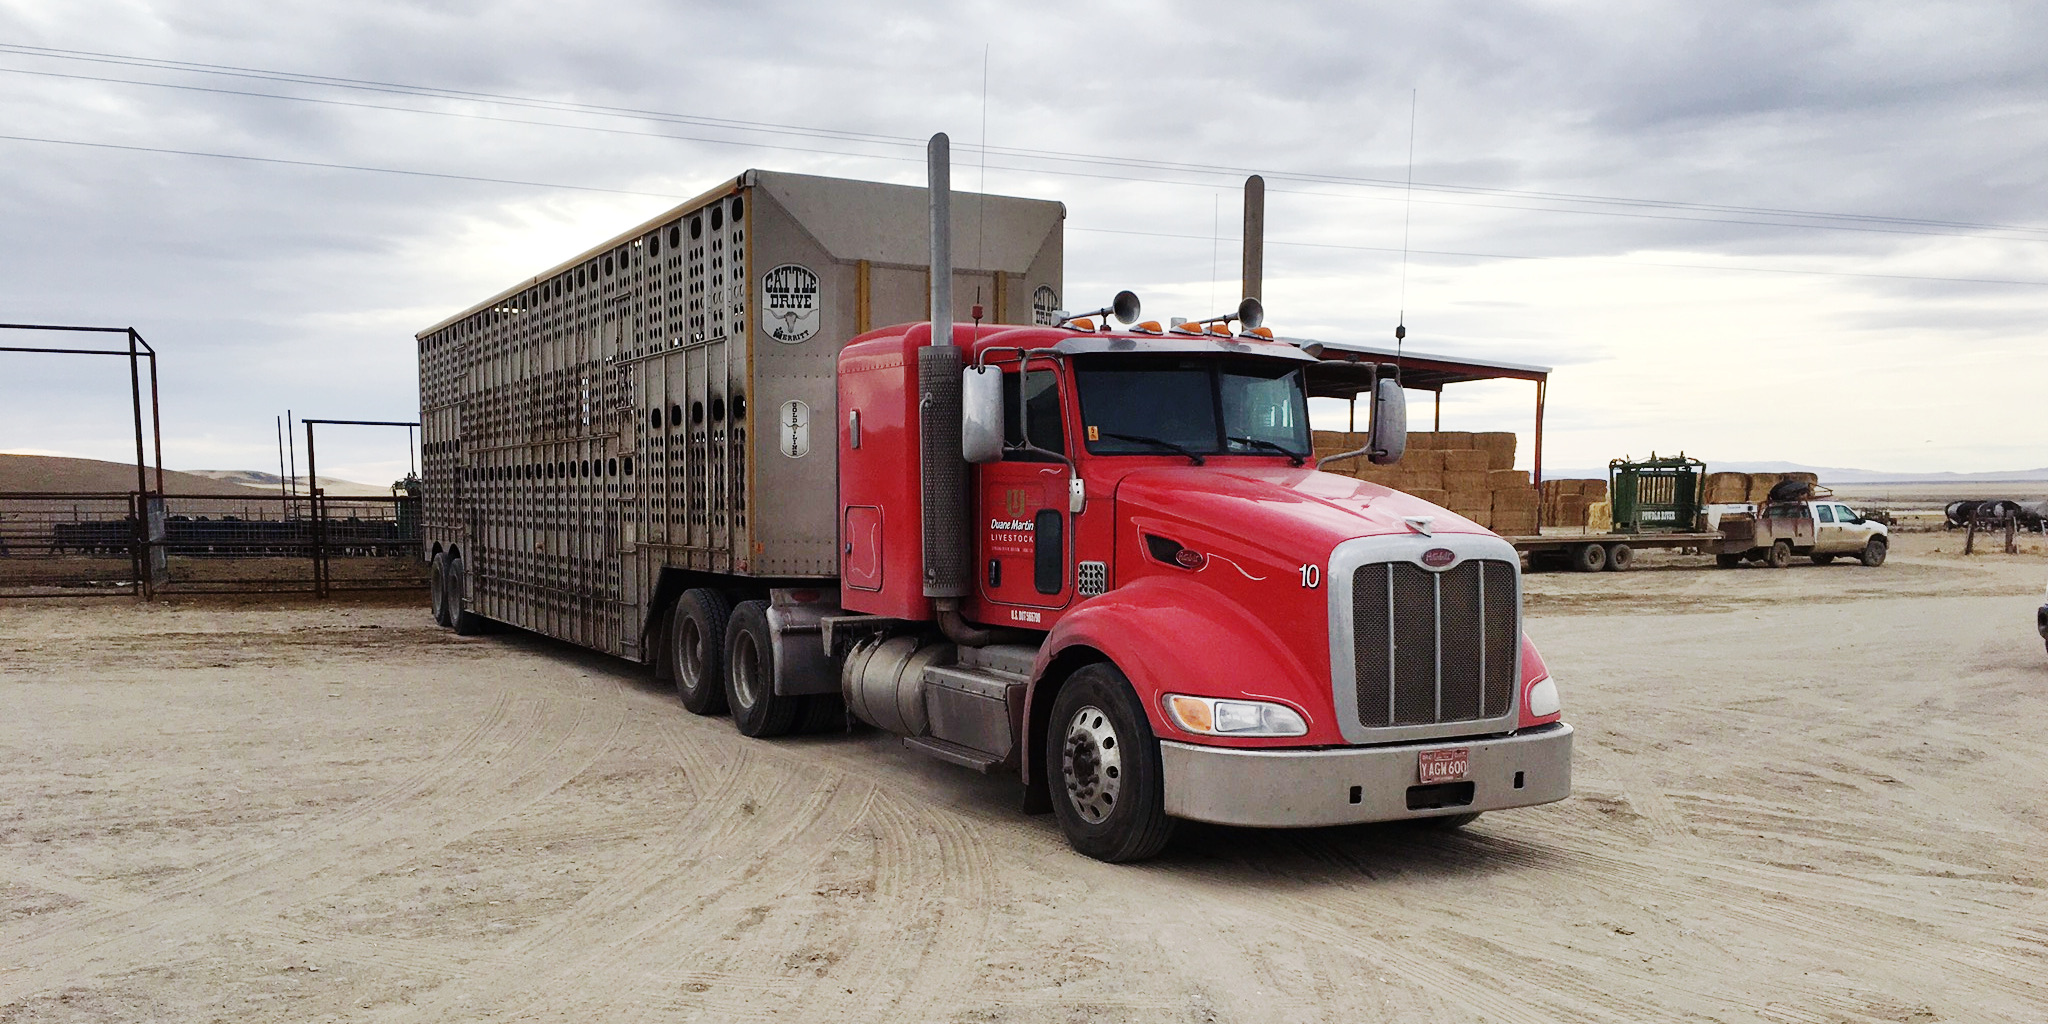 Red Cattle Truck for Hire